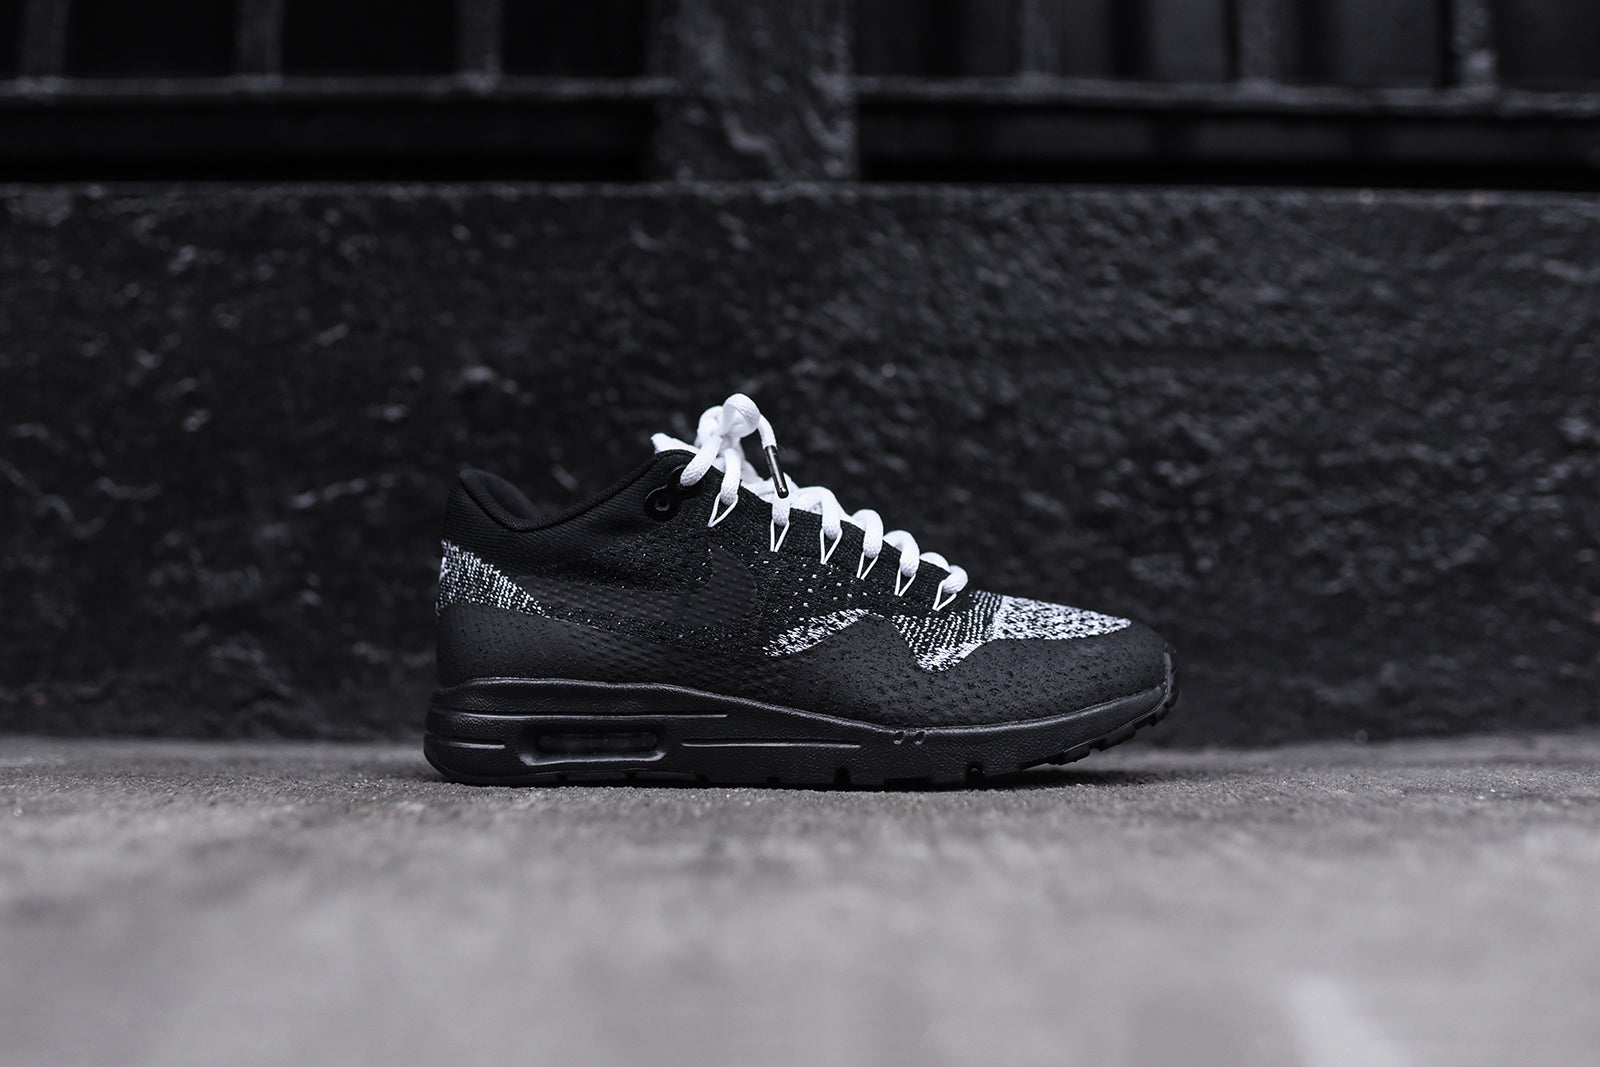 cb2e1ae199c Nike WMNS Air Max 1 Ultra Flyknit - Black   Anthracite   White. February  02